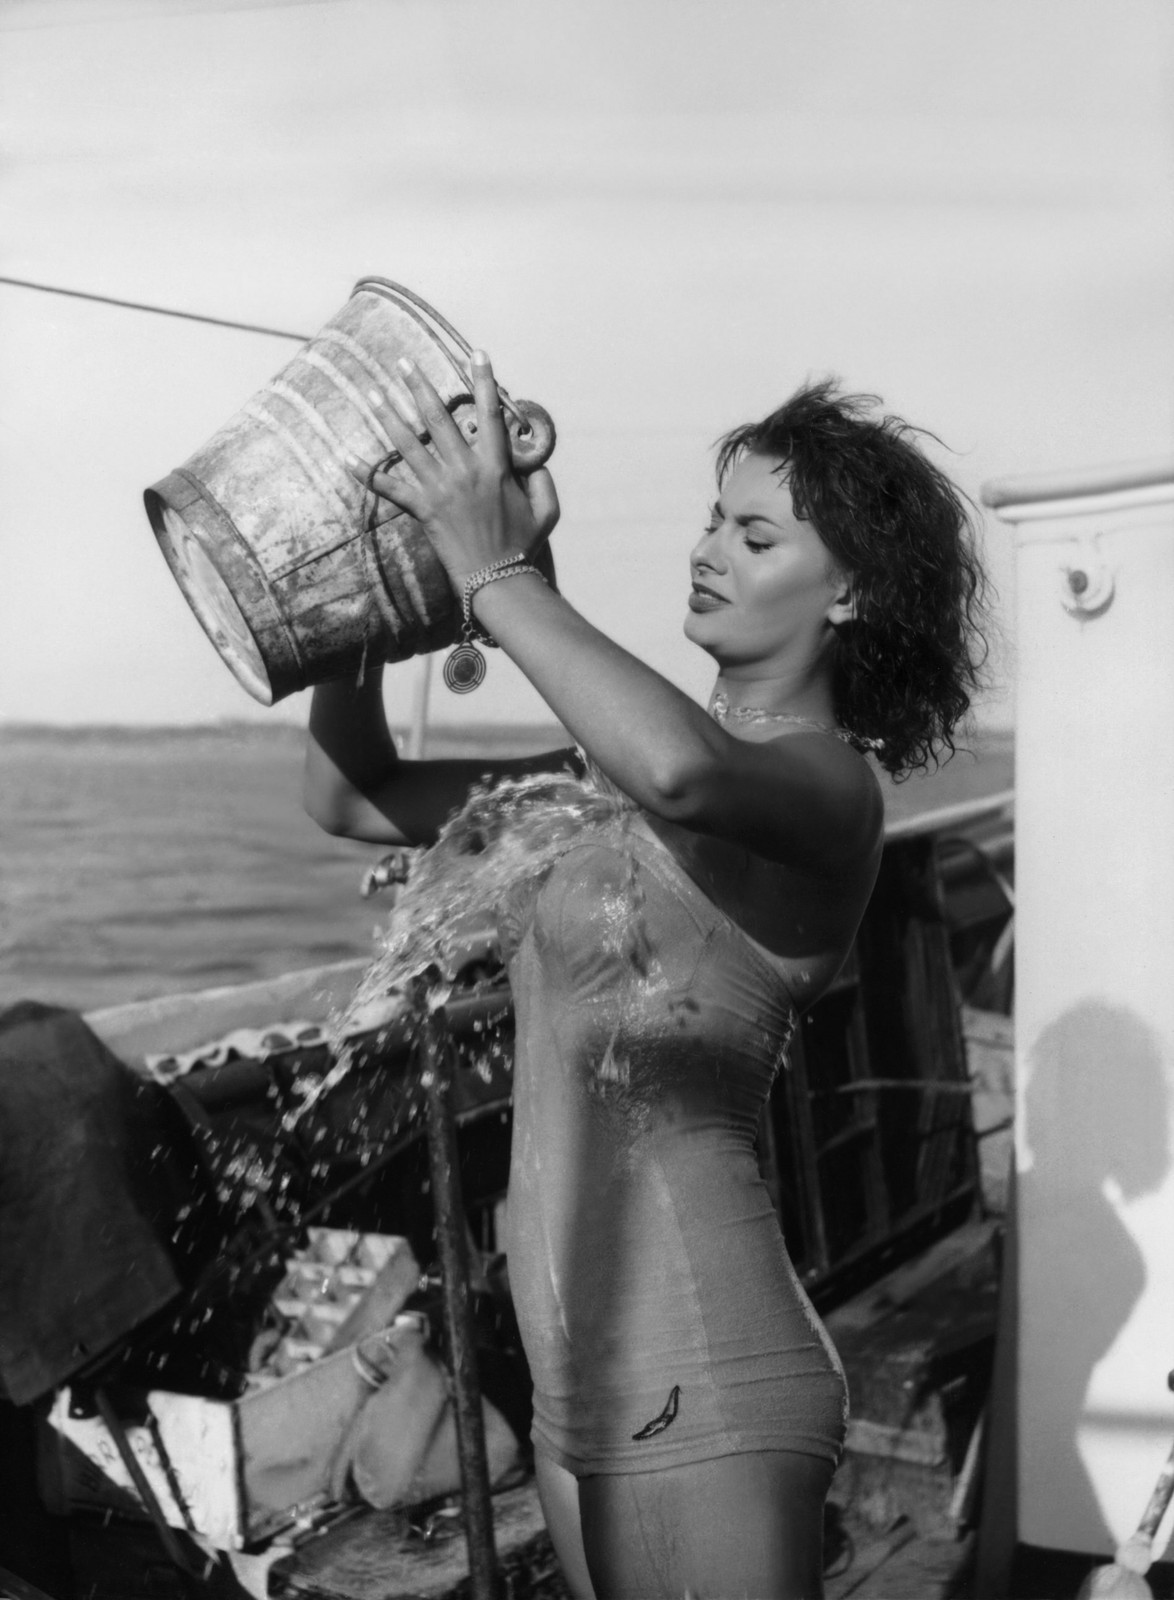 the-original-ice-bucket-challenge-by-sophia-loren-in-1955